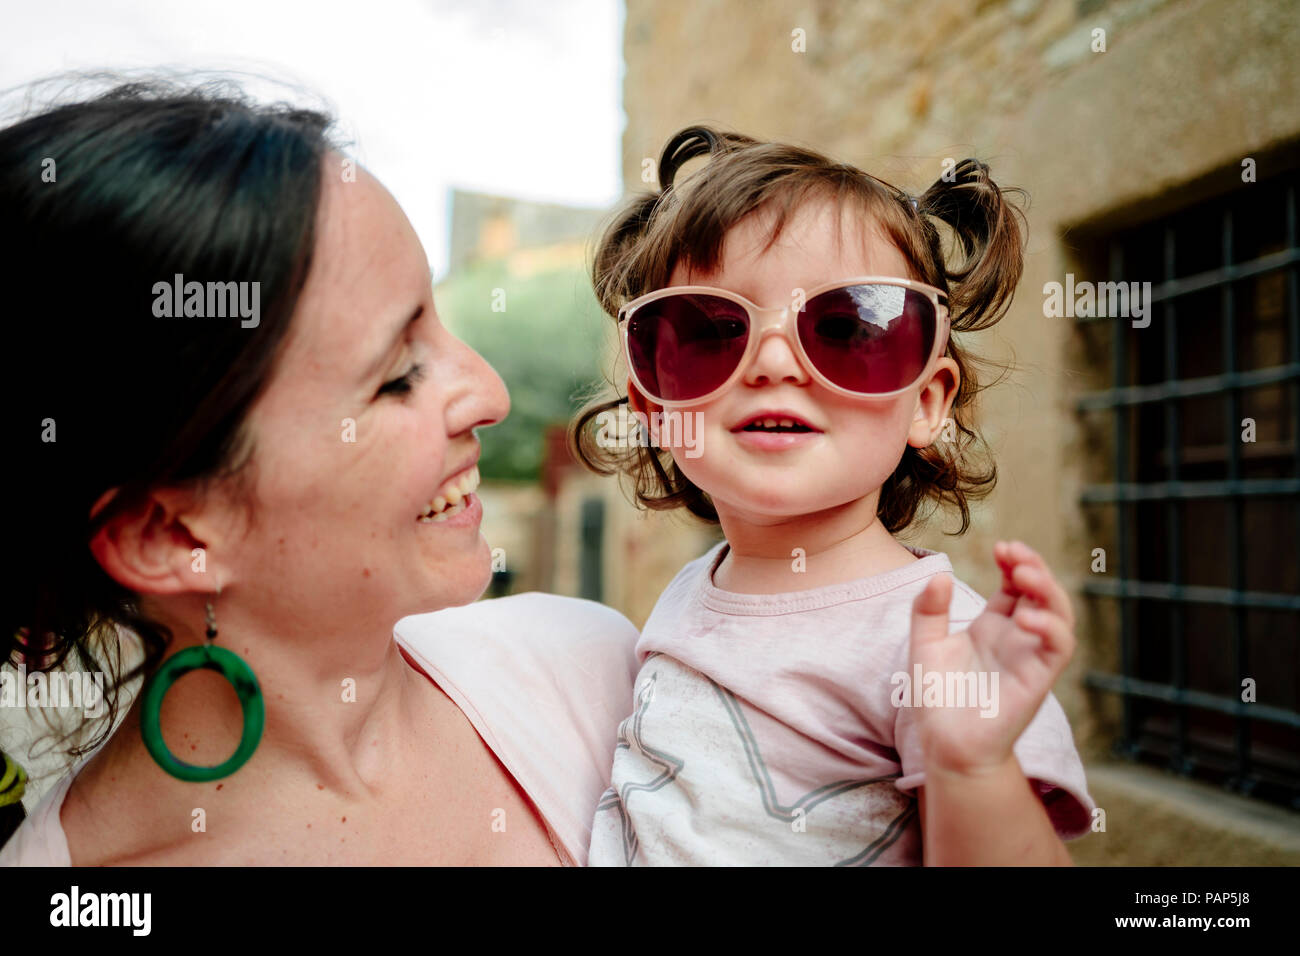 Happy baby girl wearing mother's lunettes de soleil Photo Stock